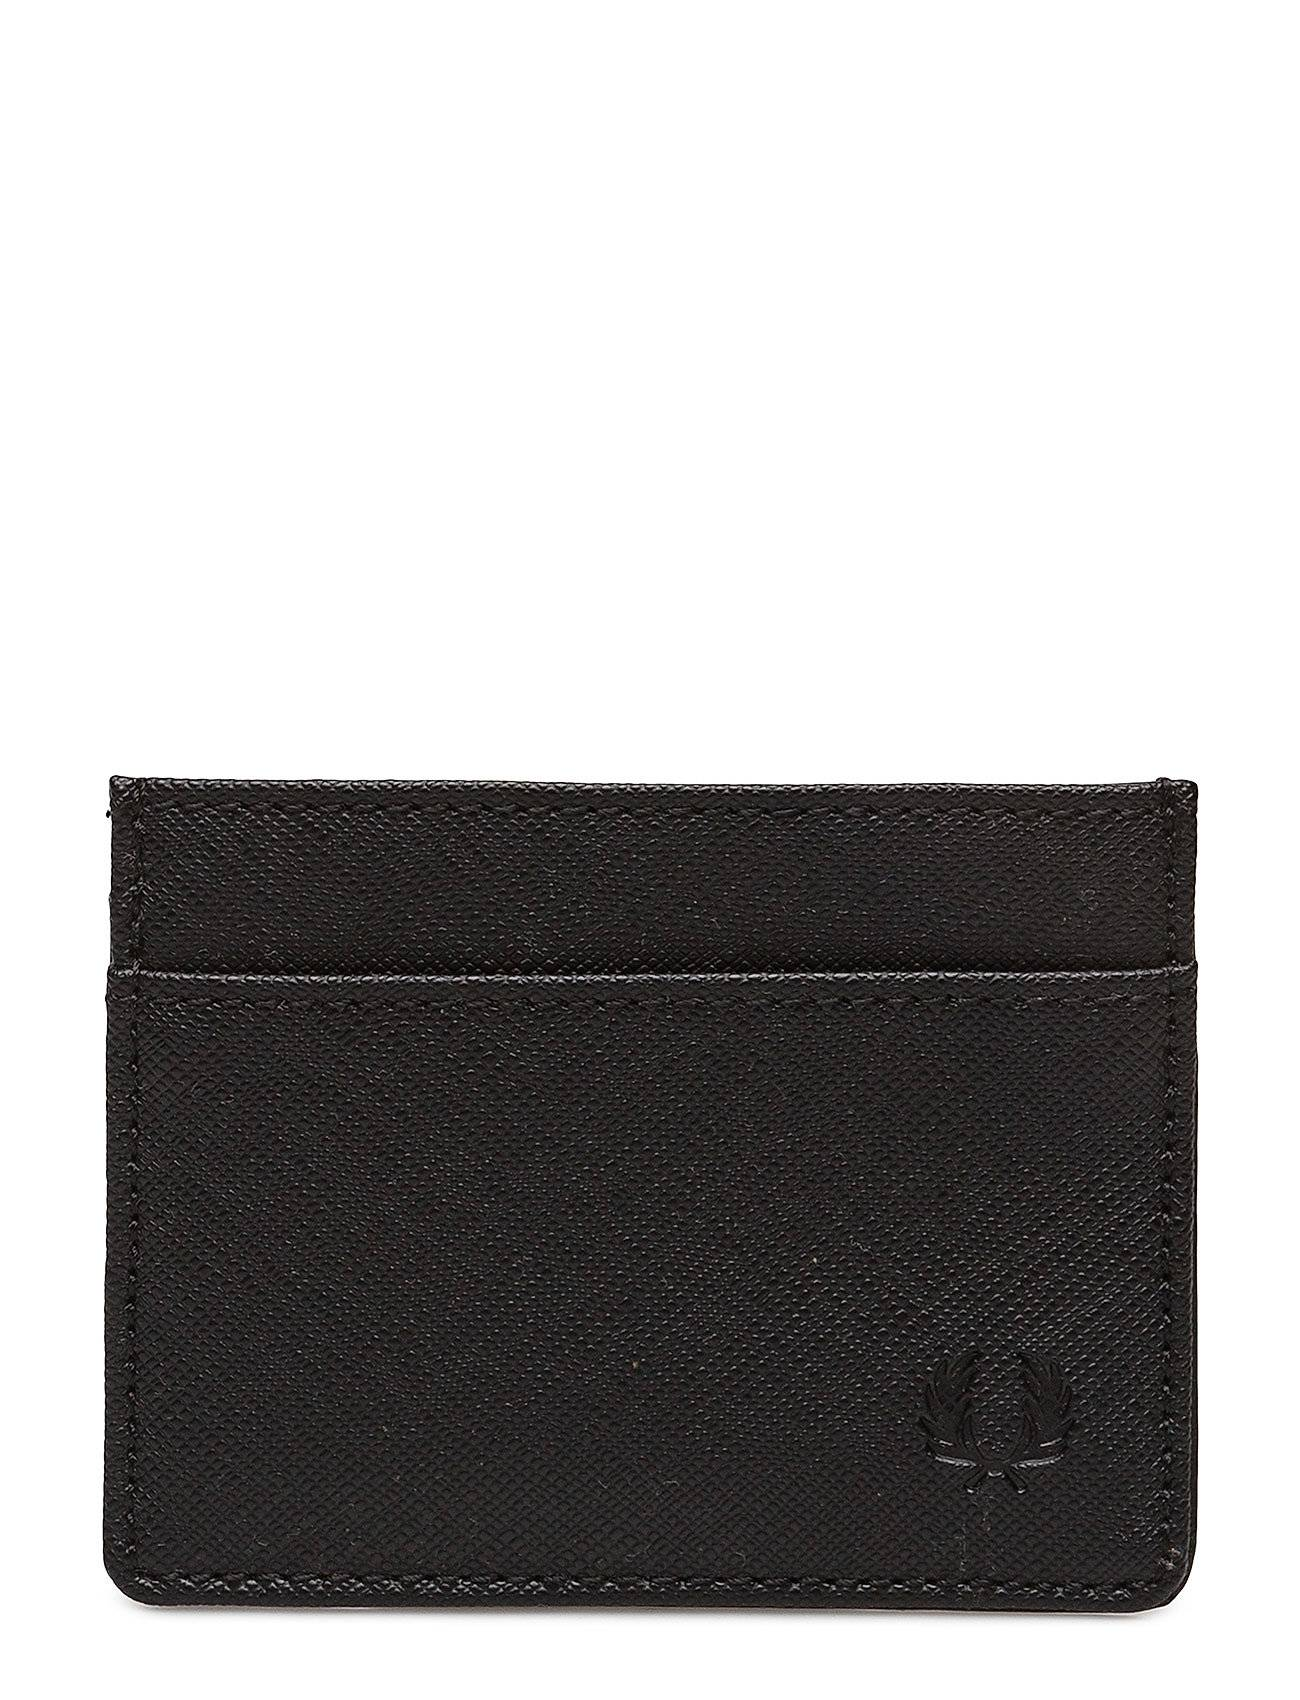 Fred Perry Saffiano Card Holder